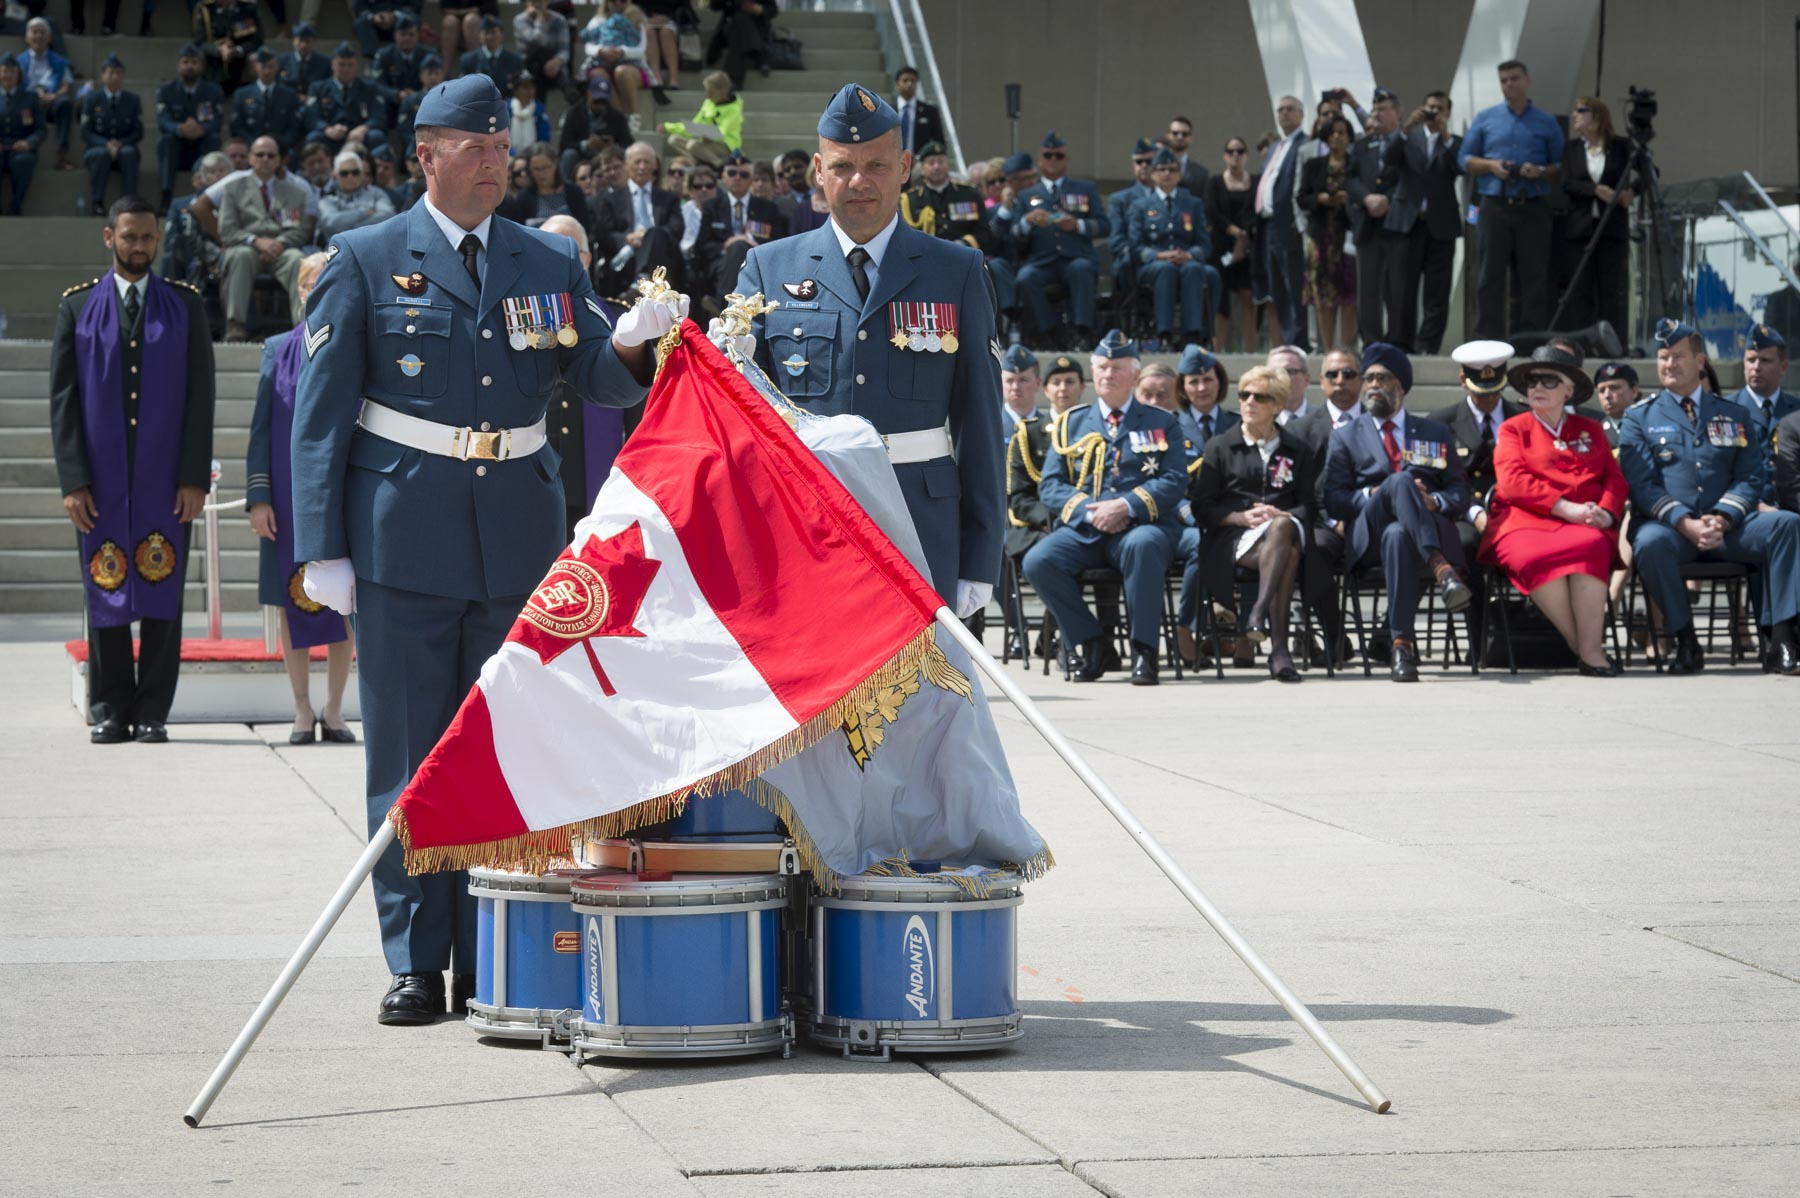 The RCAF carries two Colours which include: the Queen's Colour, a maple leaf flag with the Sovereign's cypher in the centre, which symbolizes loyalty to the Crown, and the Command Colour, a blue flag with the RCAF's badge at the centre, symbolizing the RCAF's pride, cohesion, and valour.